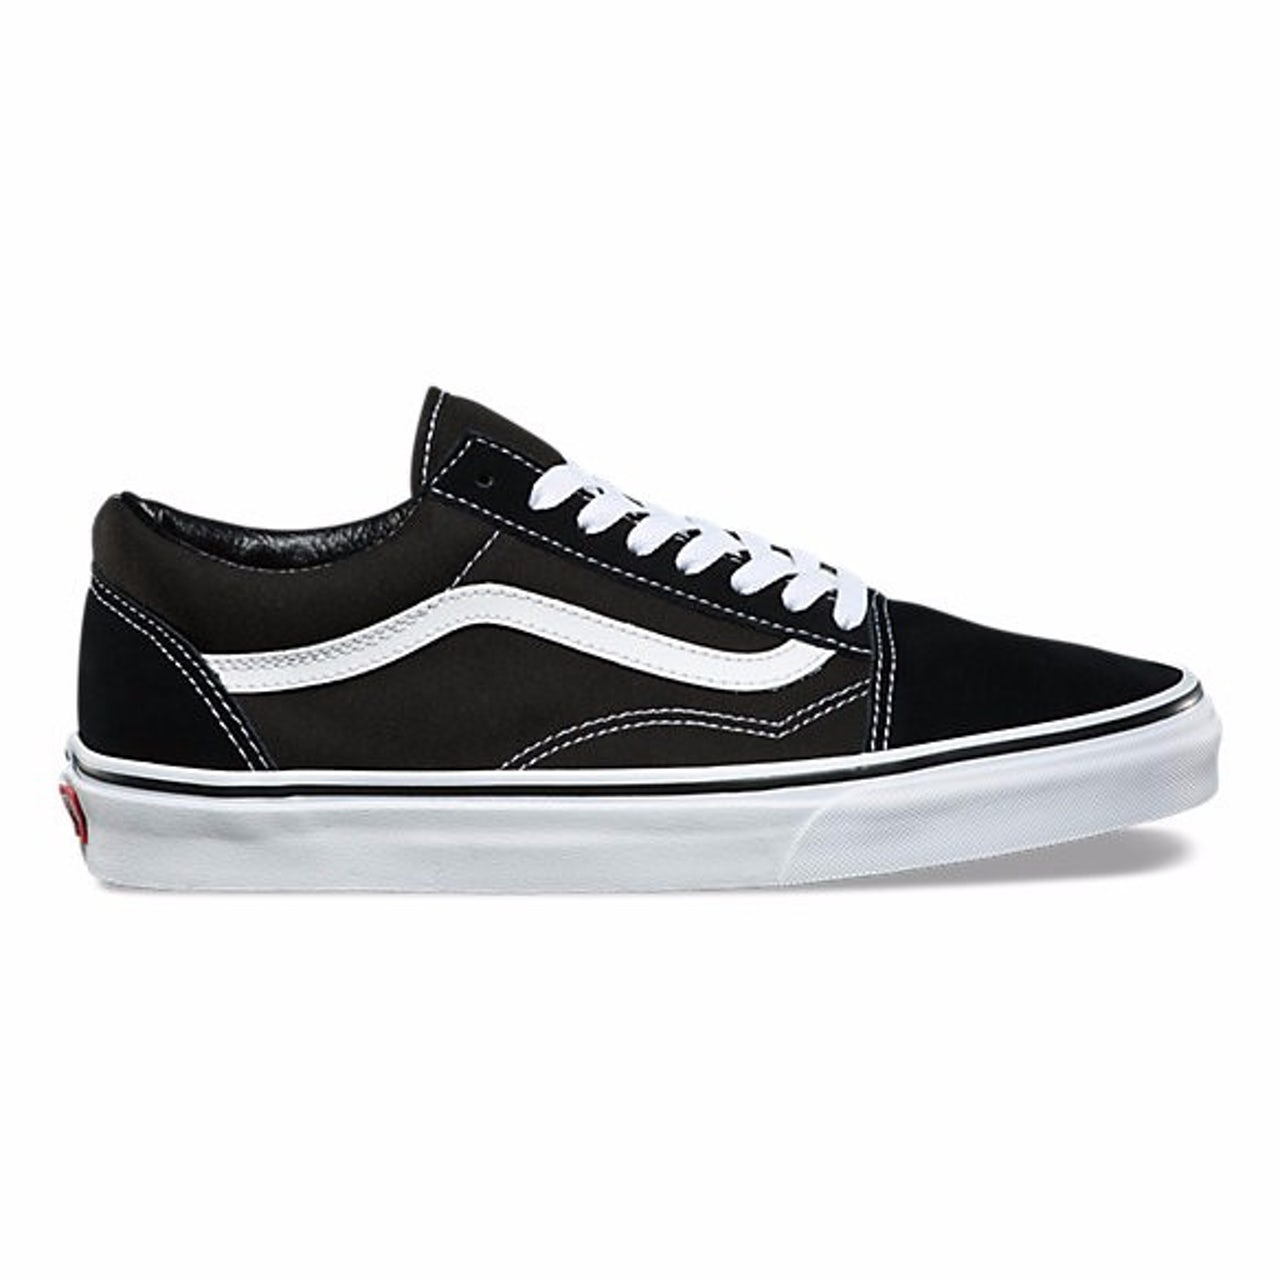 b5c71363d68a9d Product photo of the Vans Old Skool sneaker. The shoe was originally  released in 1977